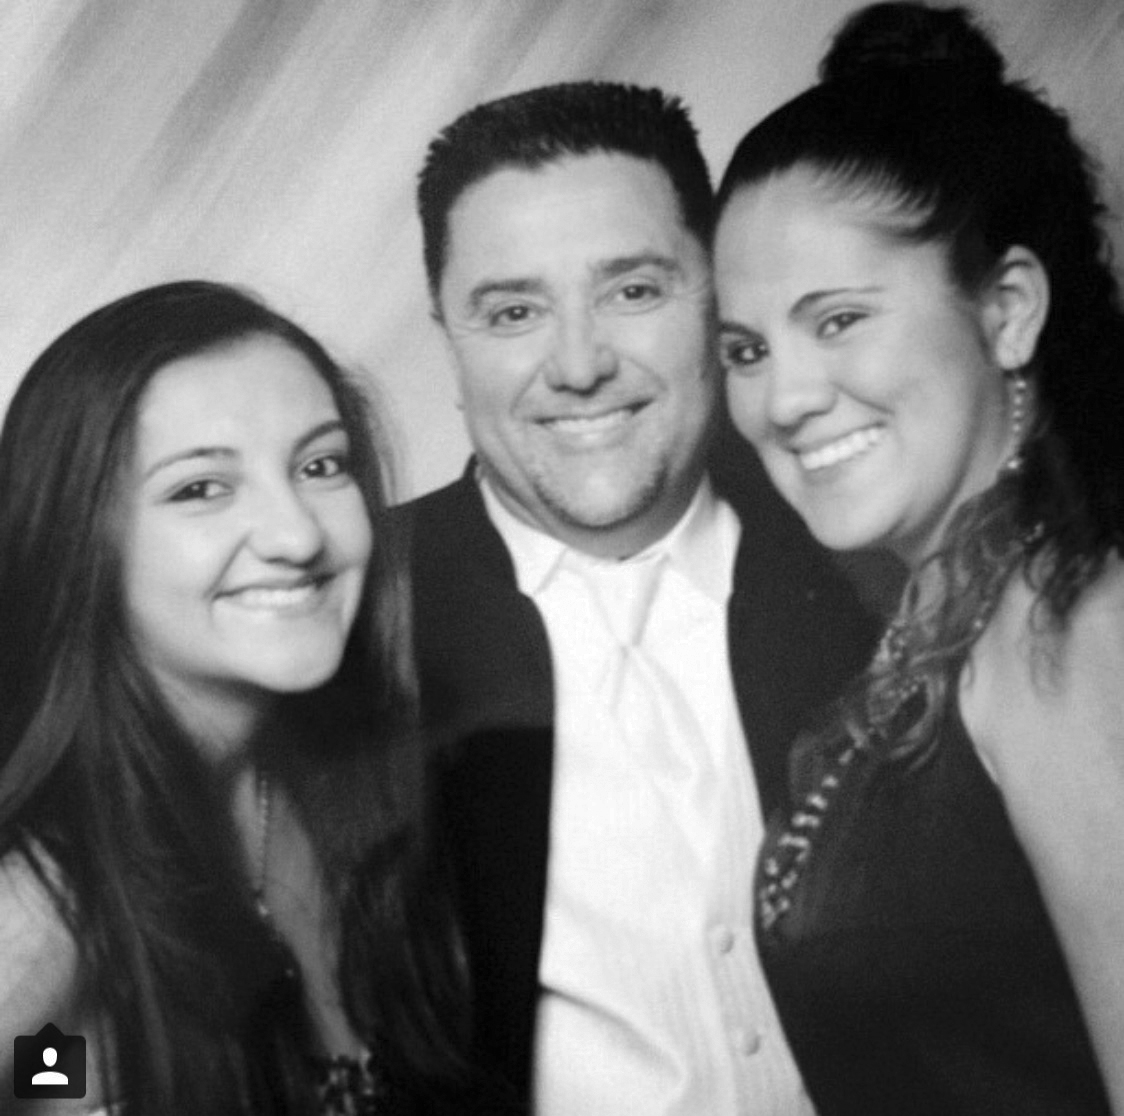 Frances Fonseca poses for a picture with her father Enrique and her sister Ashley